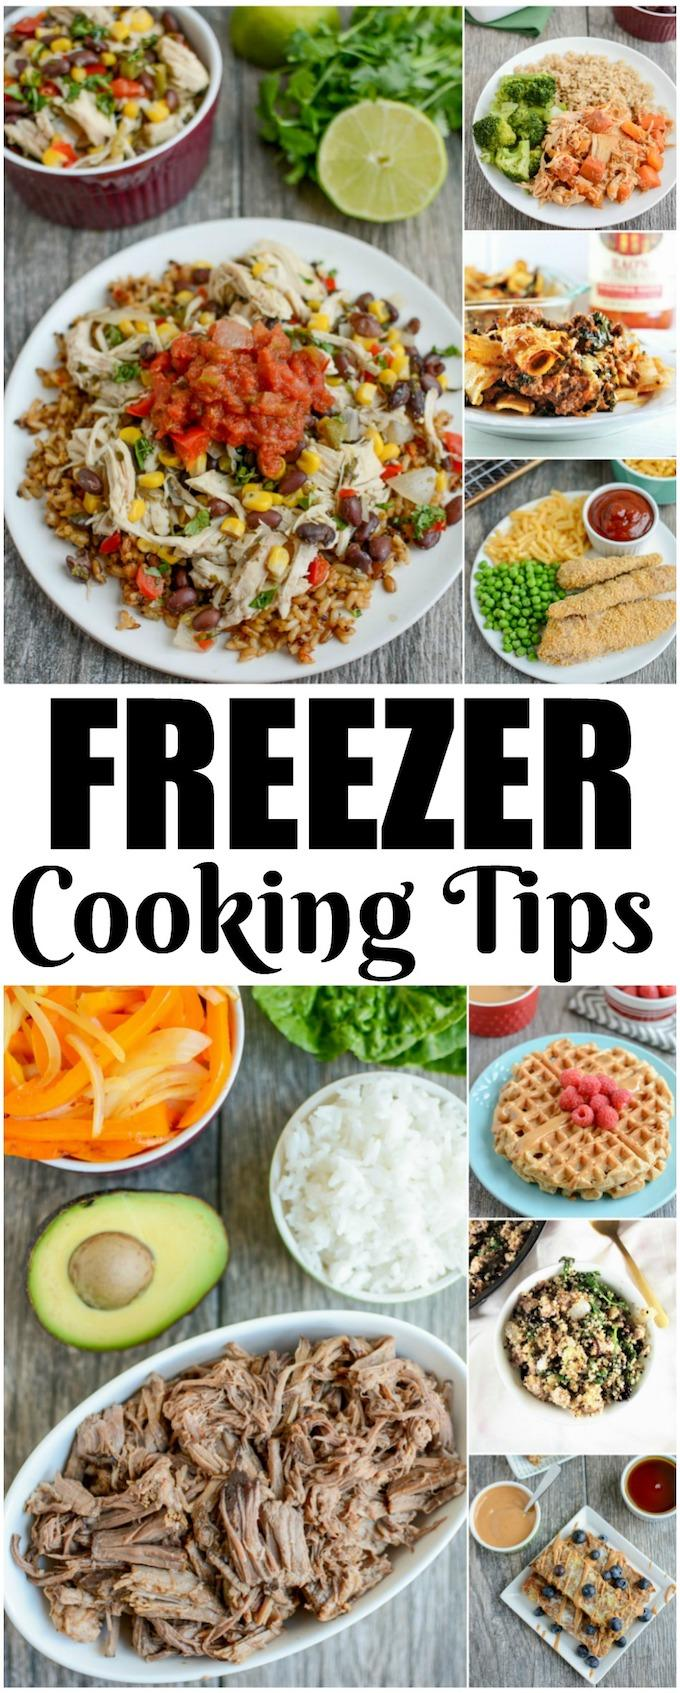 Looking for some Freezer Cooking Tips? These simple ideas from a Registered Dietitian will teach you how to make freezer cooking work for you by saving time and reducing stress during a busy week.